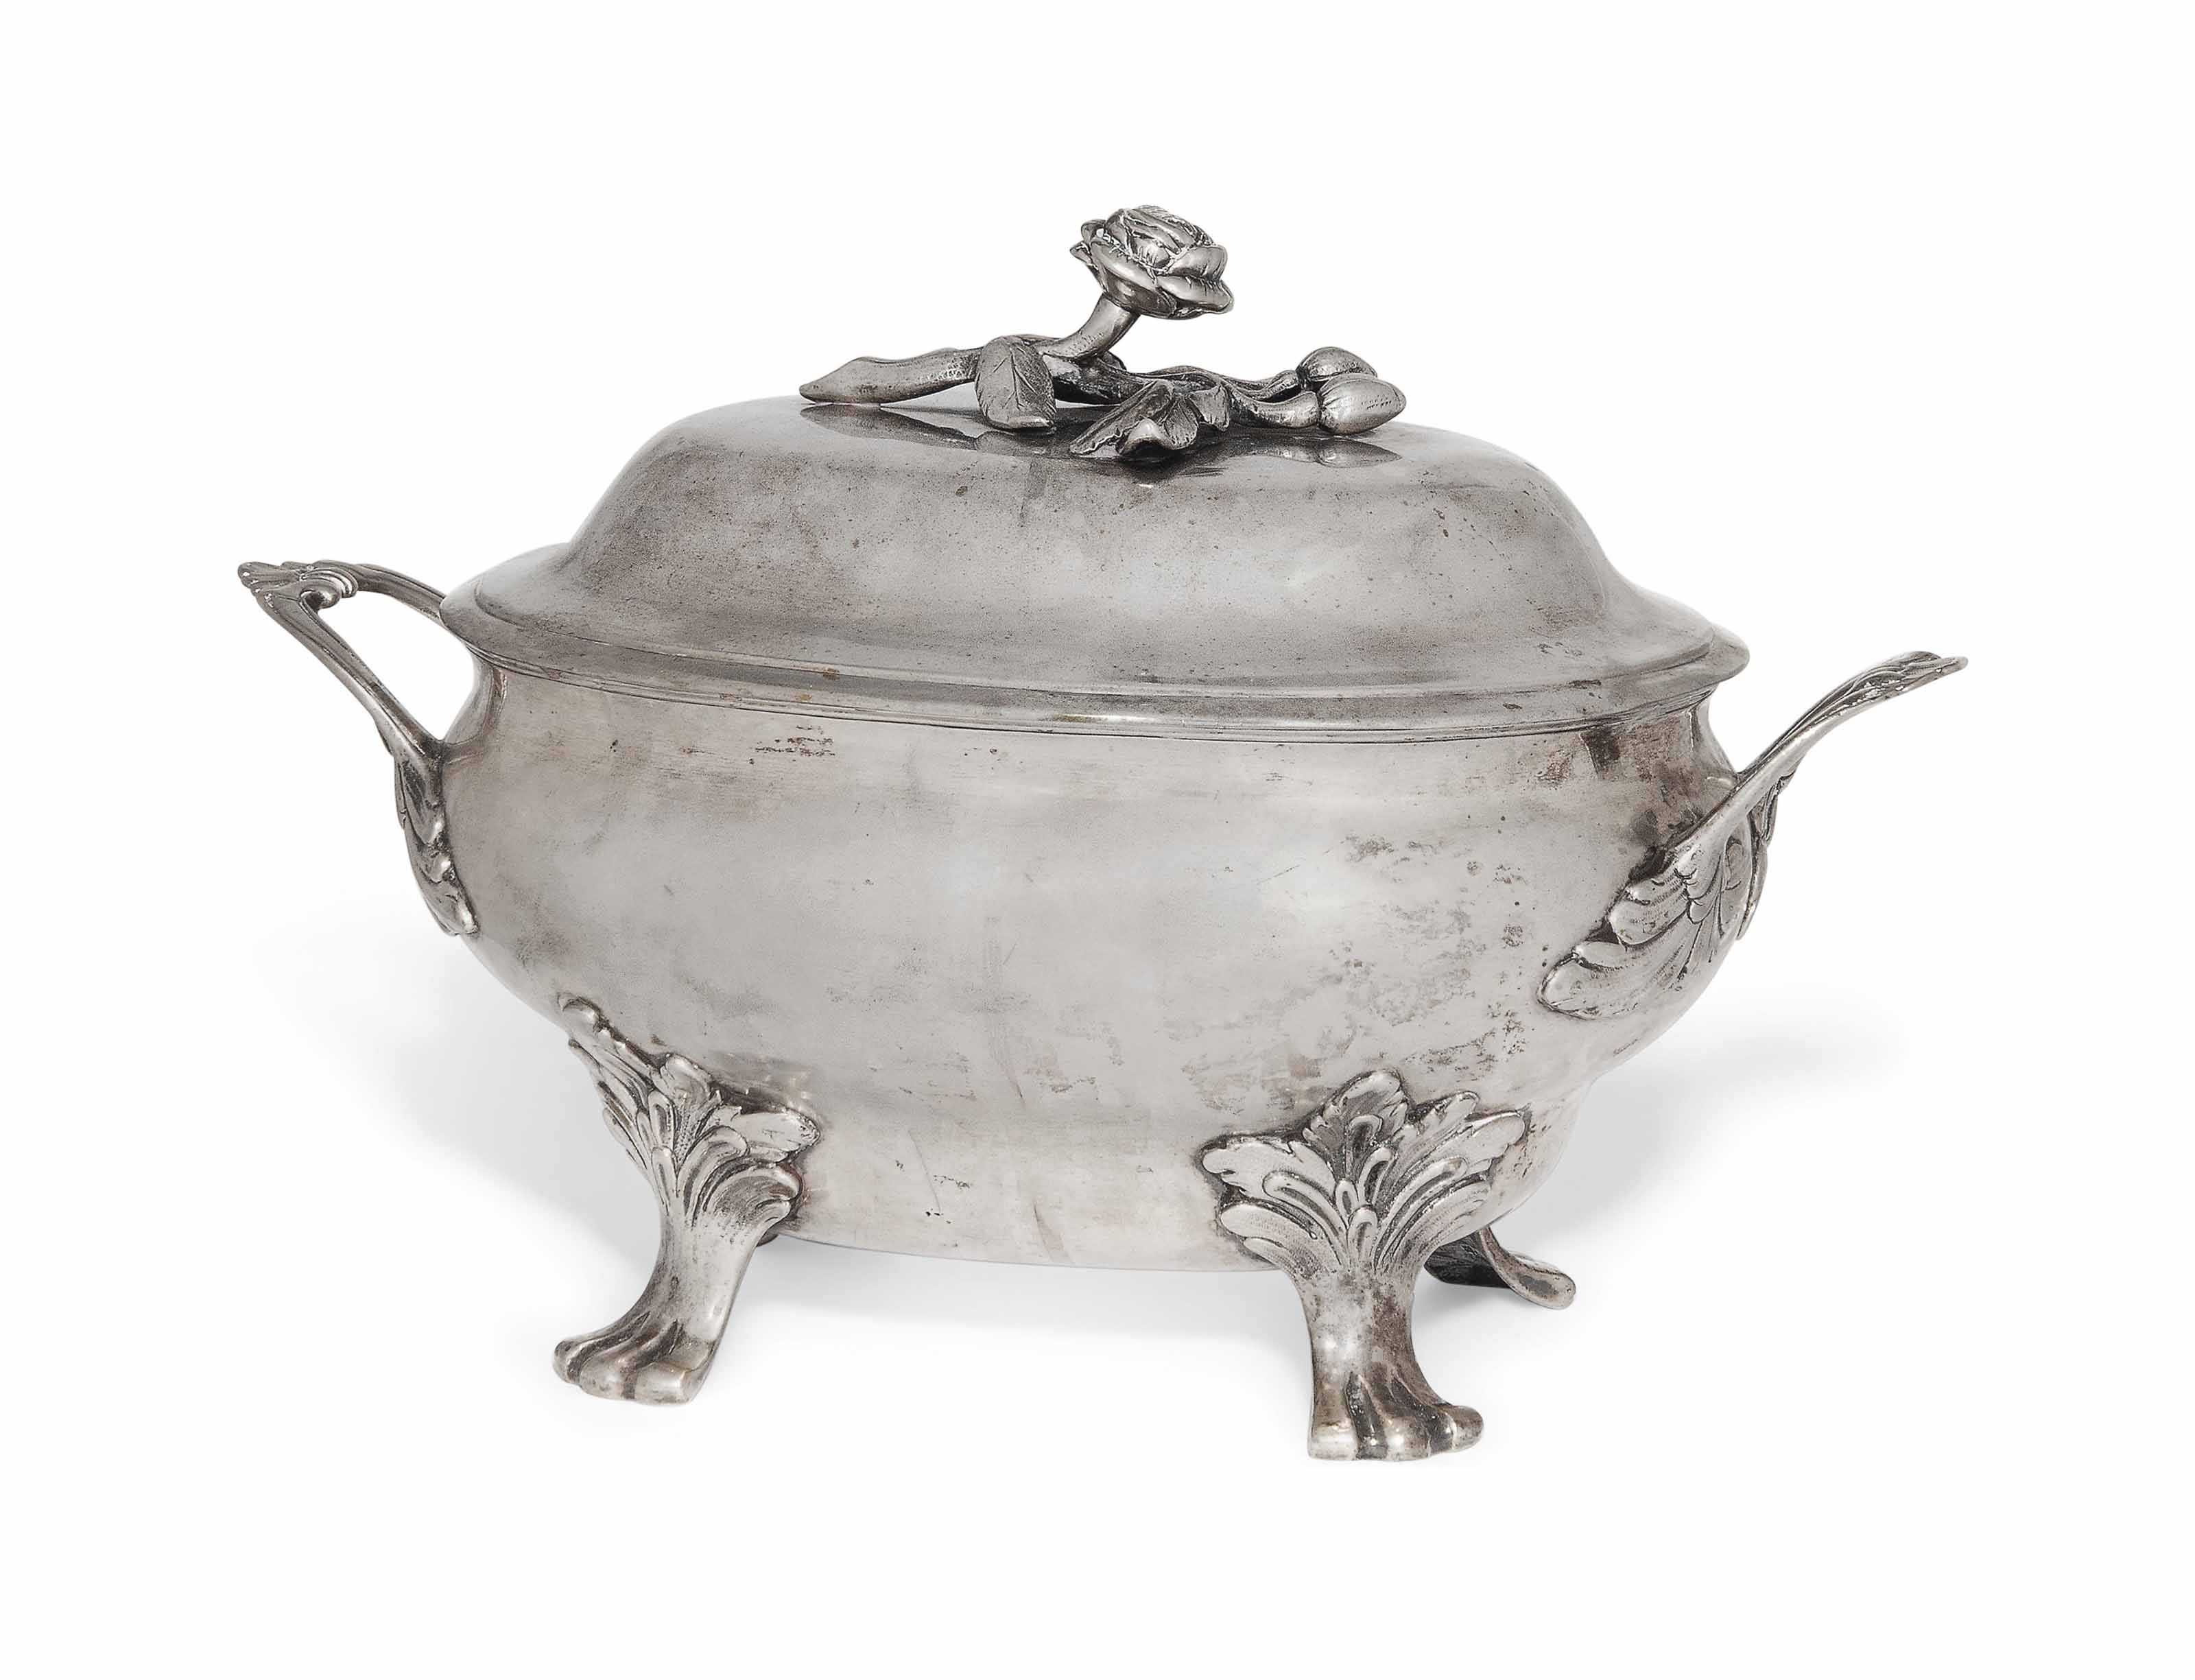 A GERMAN SILVER SOUP TUREEN AN